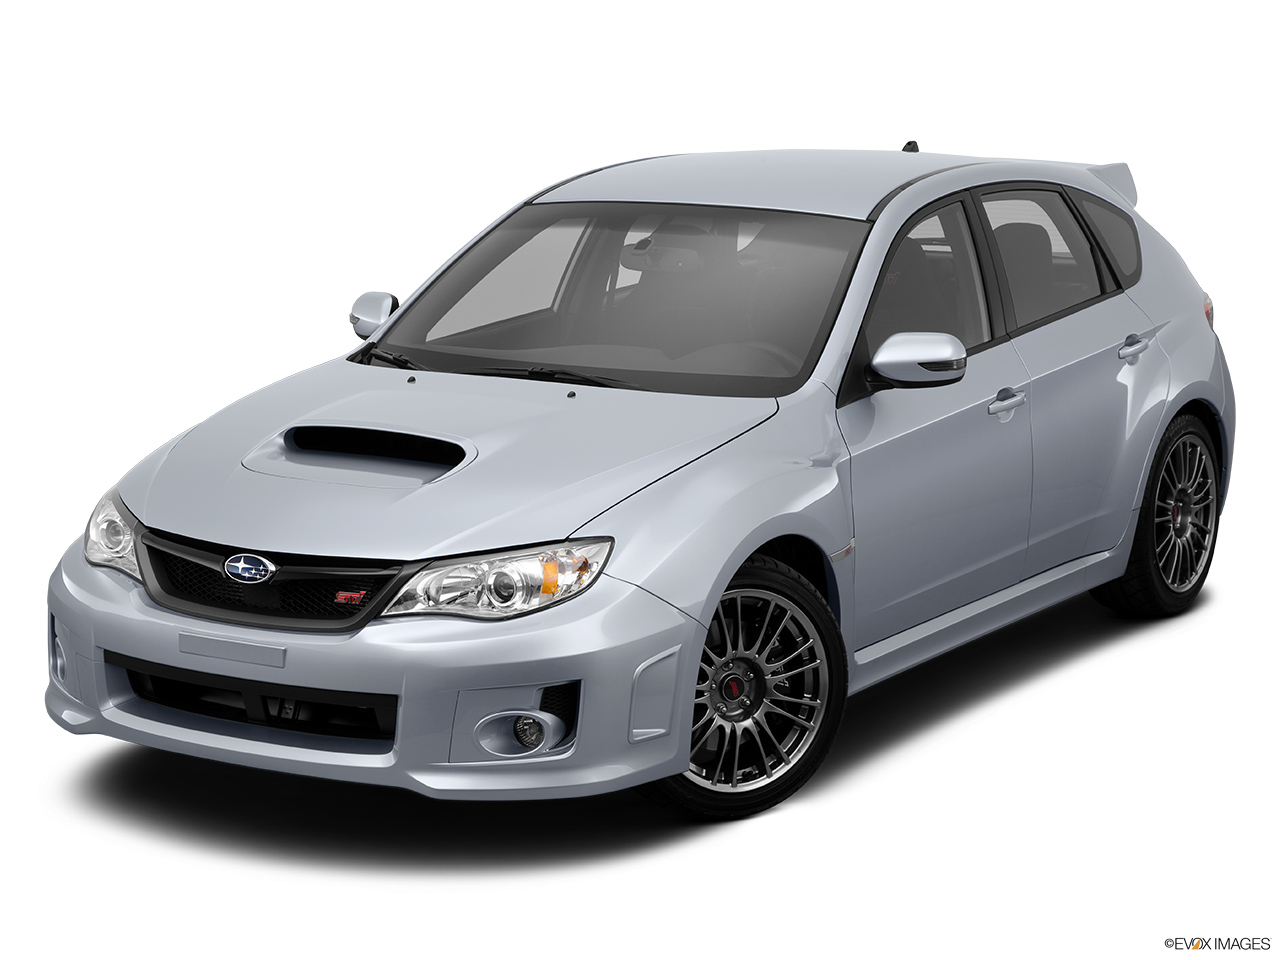 2014 subaru impreza wagon wrx 5dr manual wrx sti. Black Bedroom Furniture Sets. Home Design Ideas